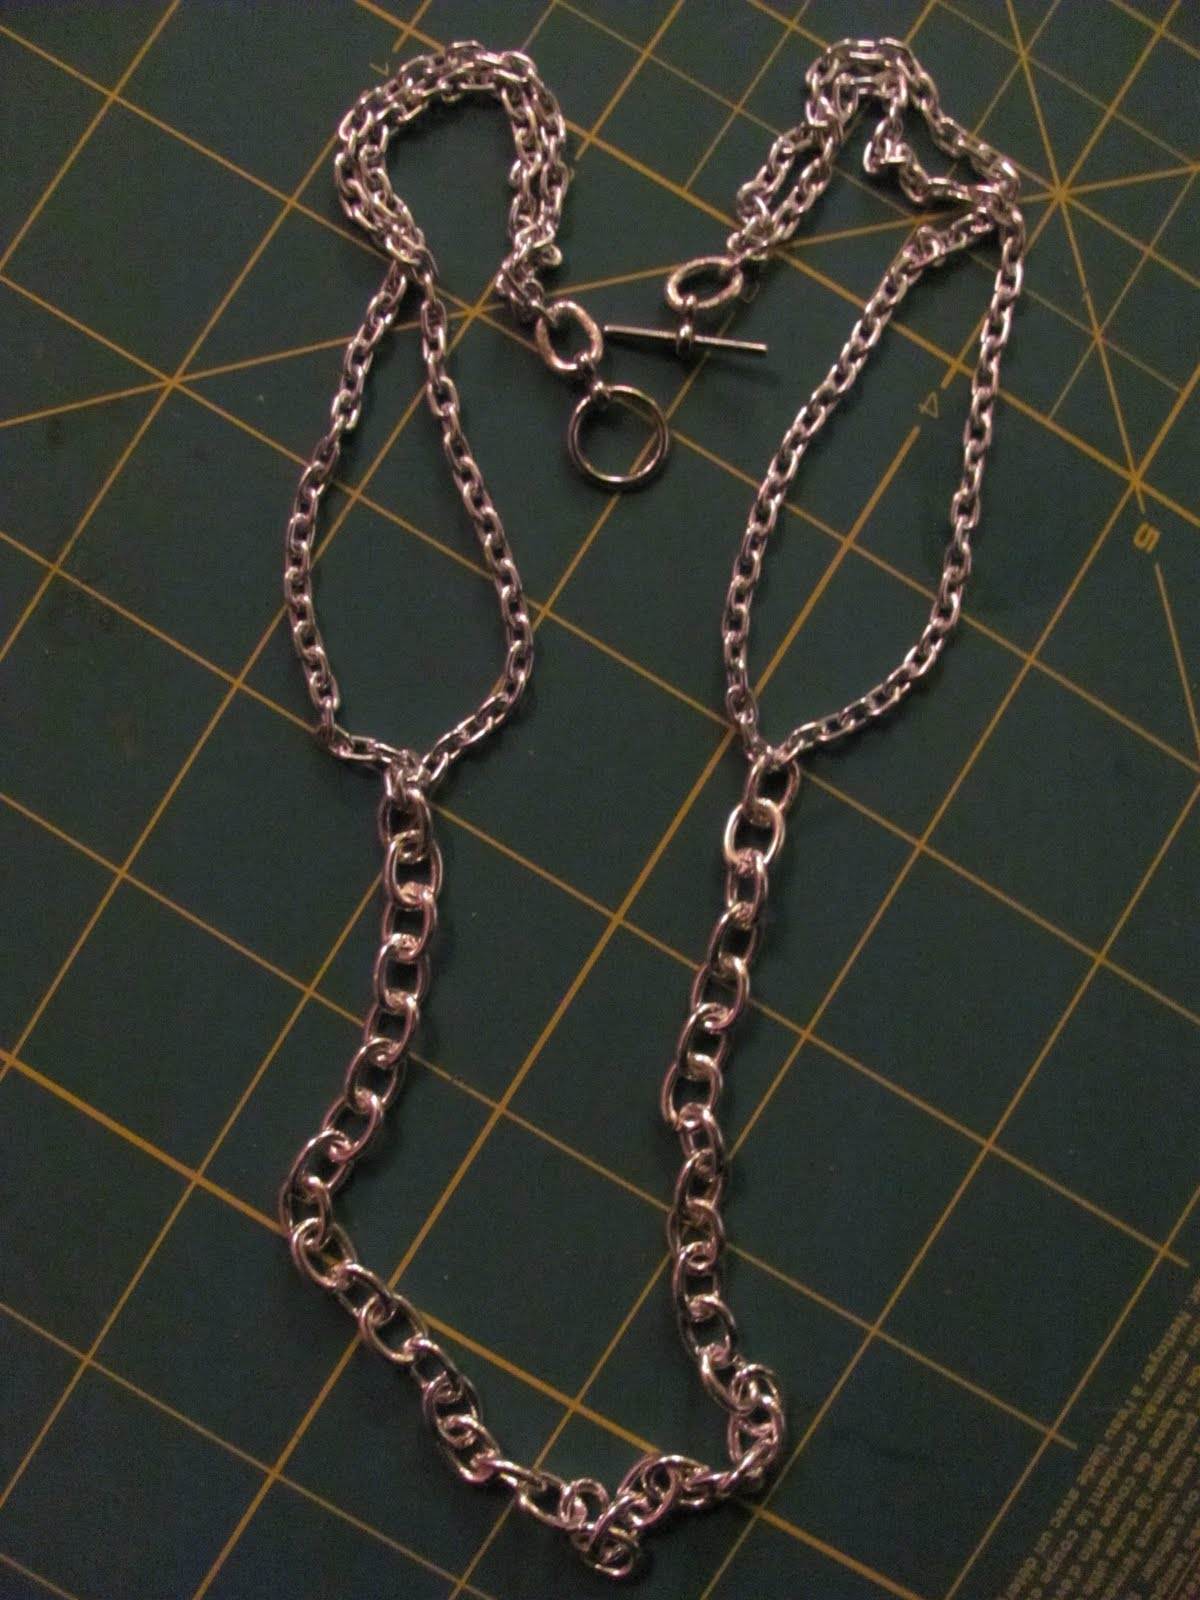 725bd7c4f86731 Cut a section of the larger chain about 9-12 inches long or so, and attach  it to the loose ends of the smaller chain to make the necklace base.